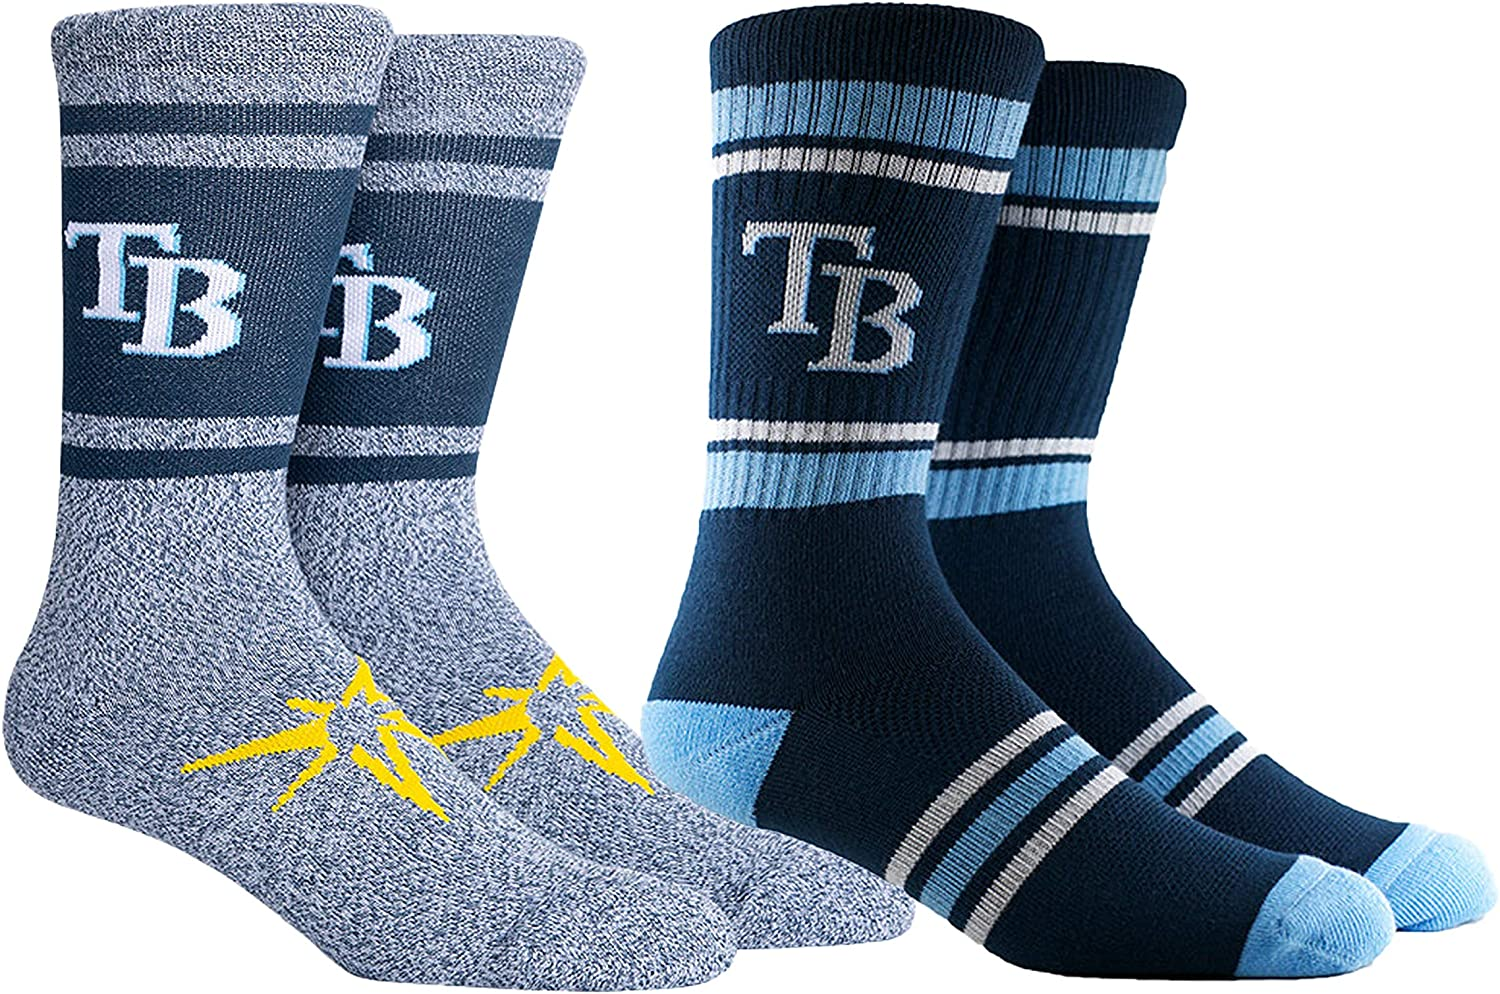 PKWY Unisex 2-Pack MLB Tampa Bay Rays Mixed Crew Socks